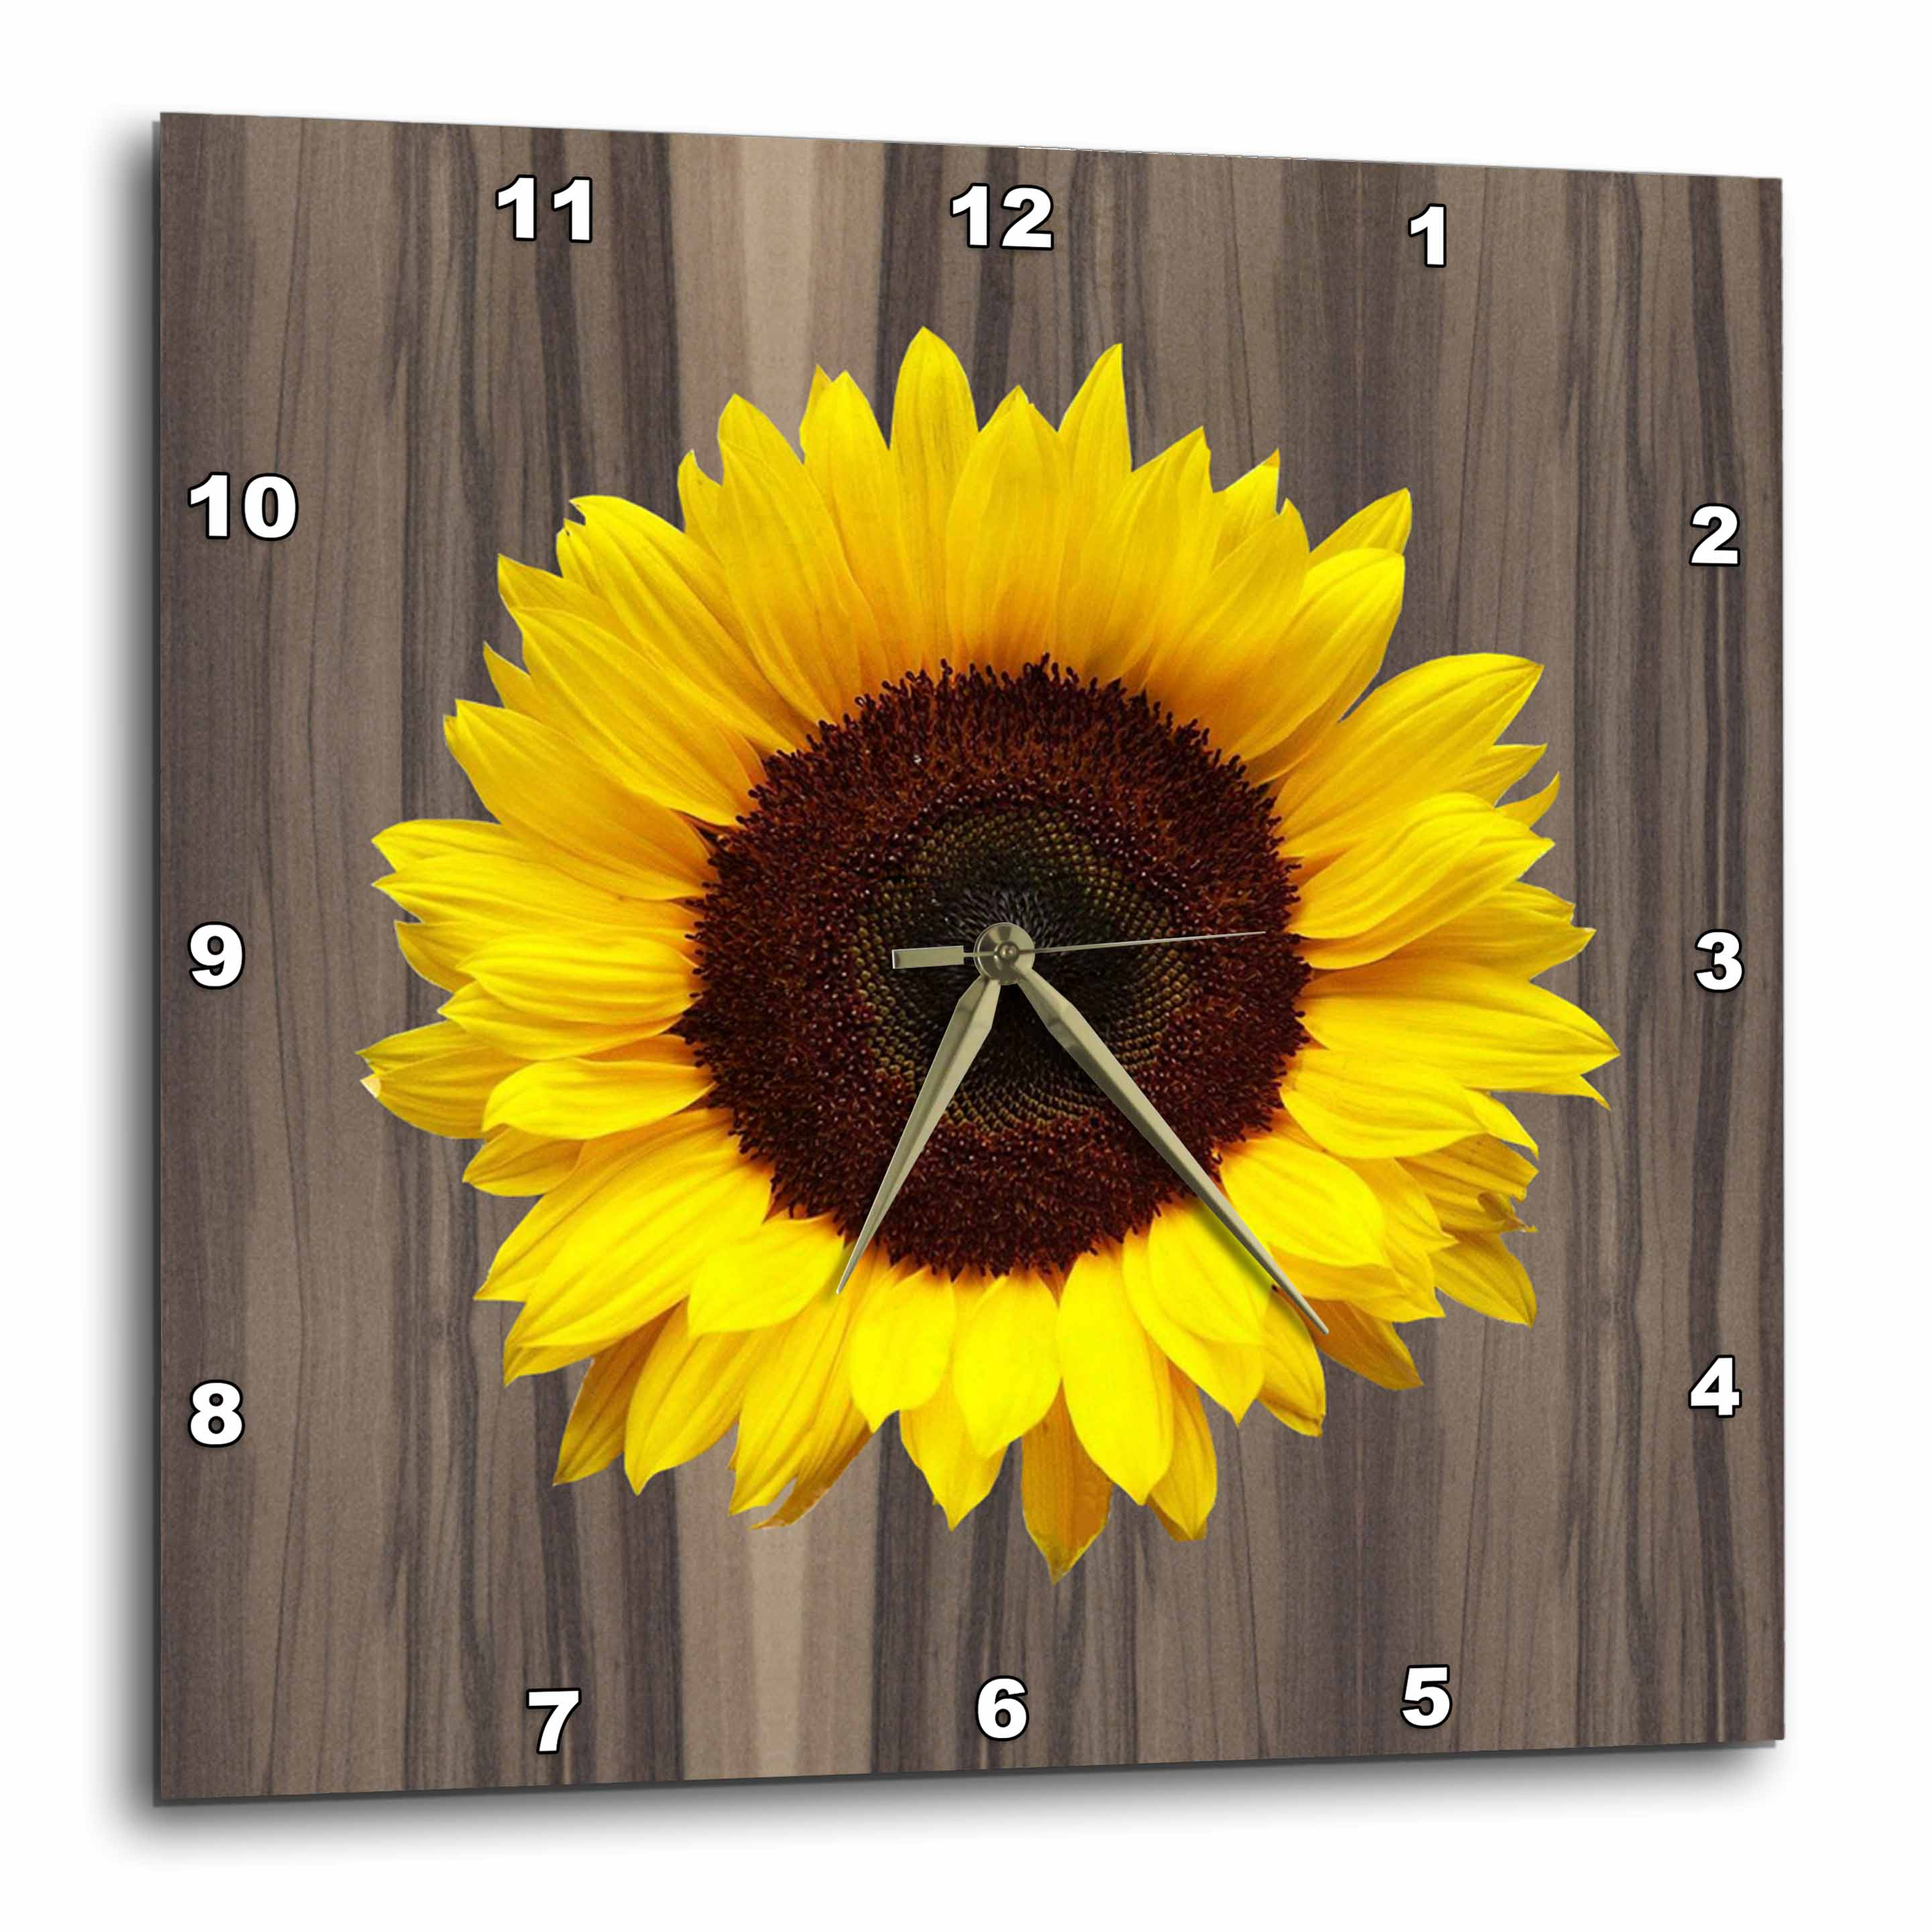 3dRose Wood Image with Sunflower, Wall Clock, 10 by 10-inch